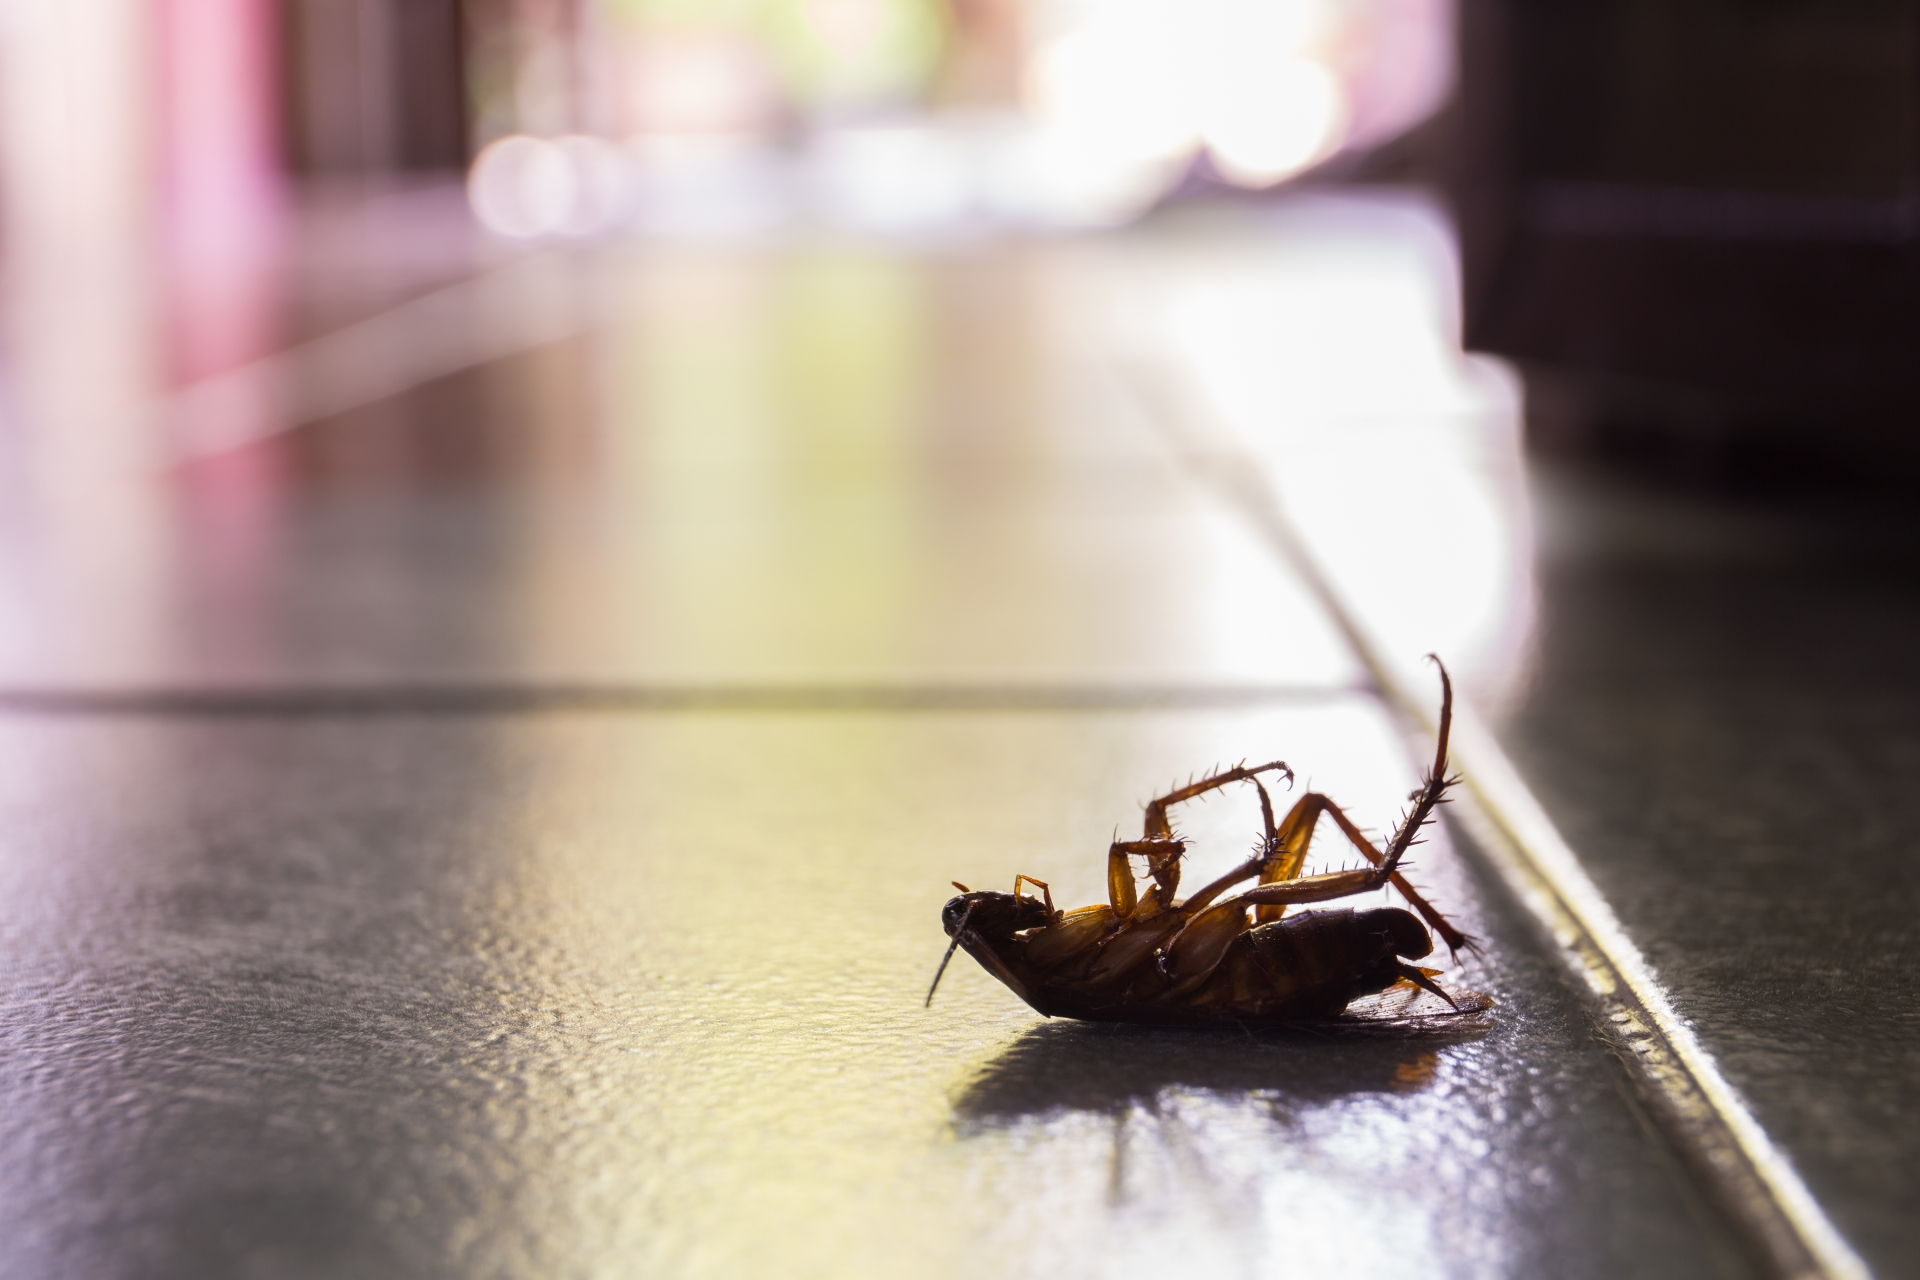 Cockroach Control, Pest Control in Sydenham, SE26. Call Now 020 8166 9746